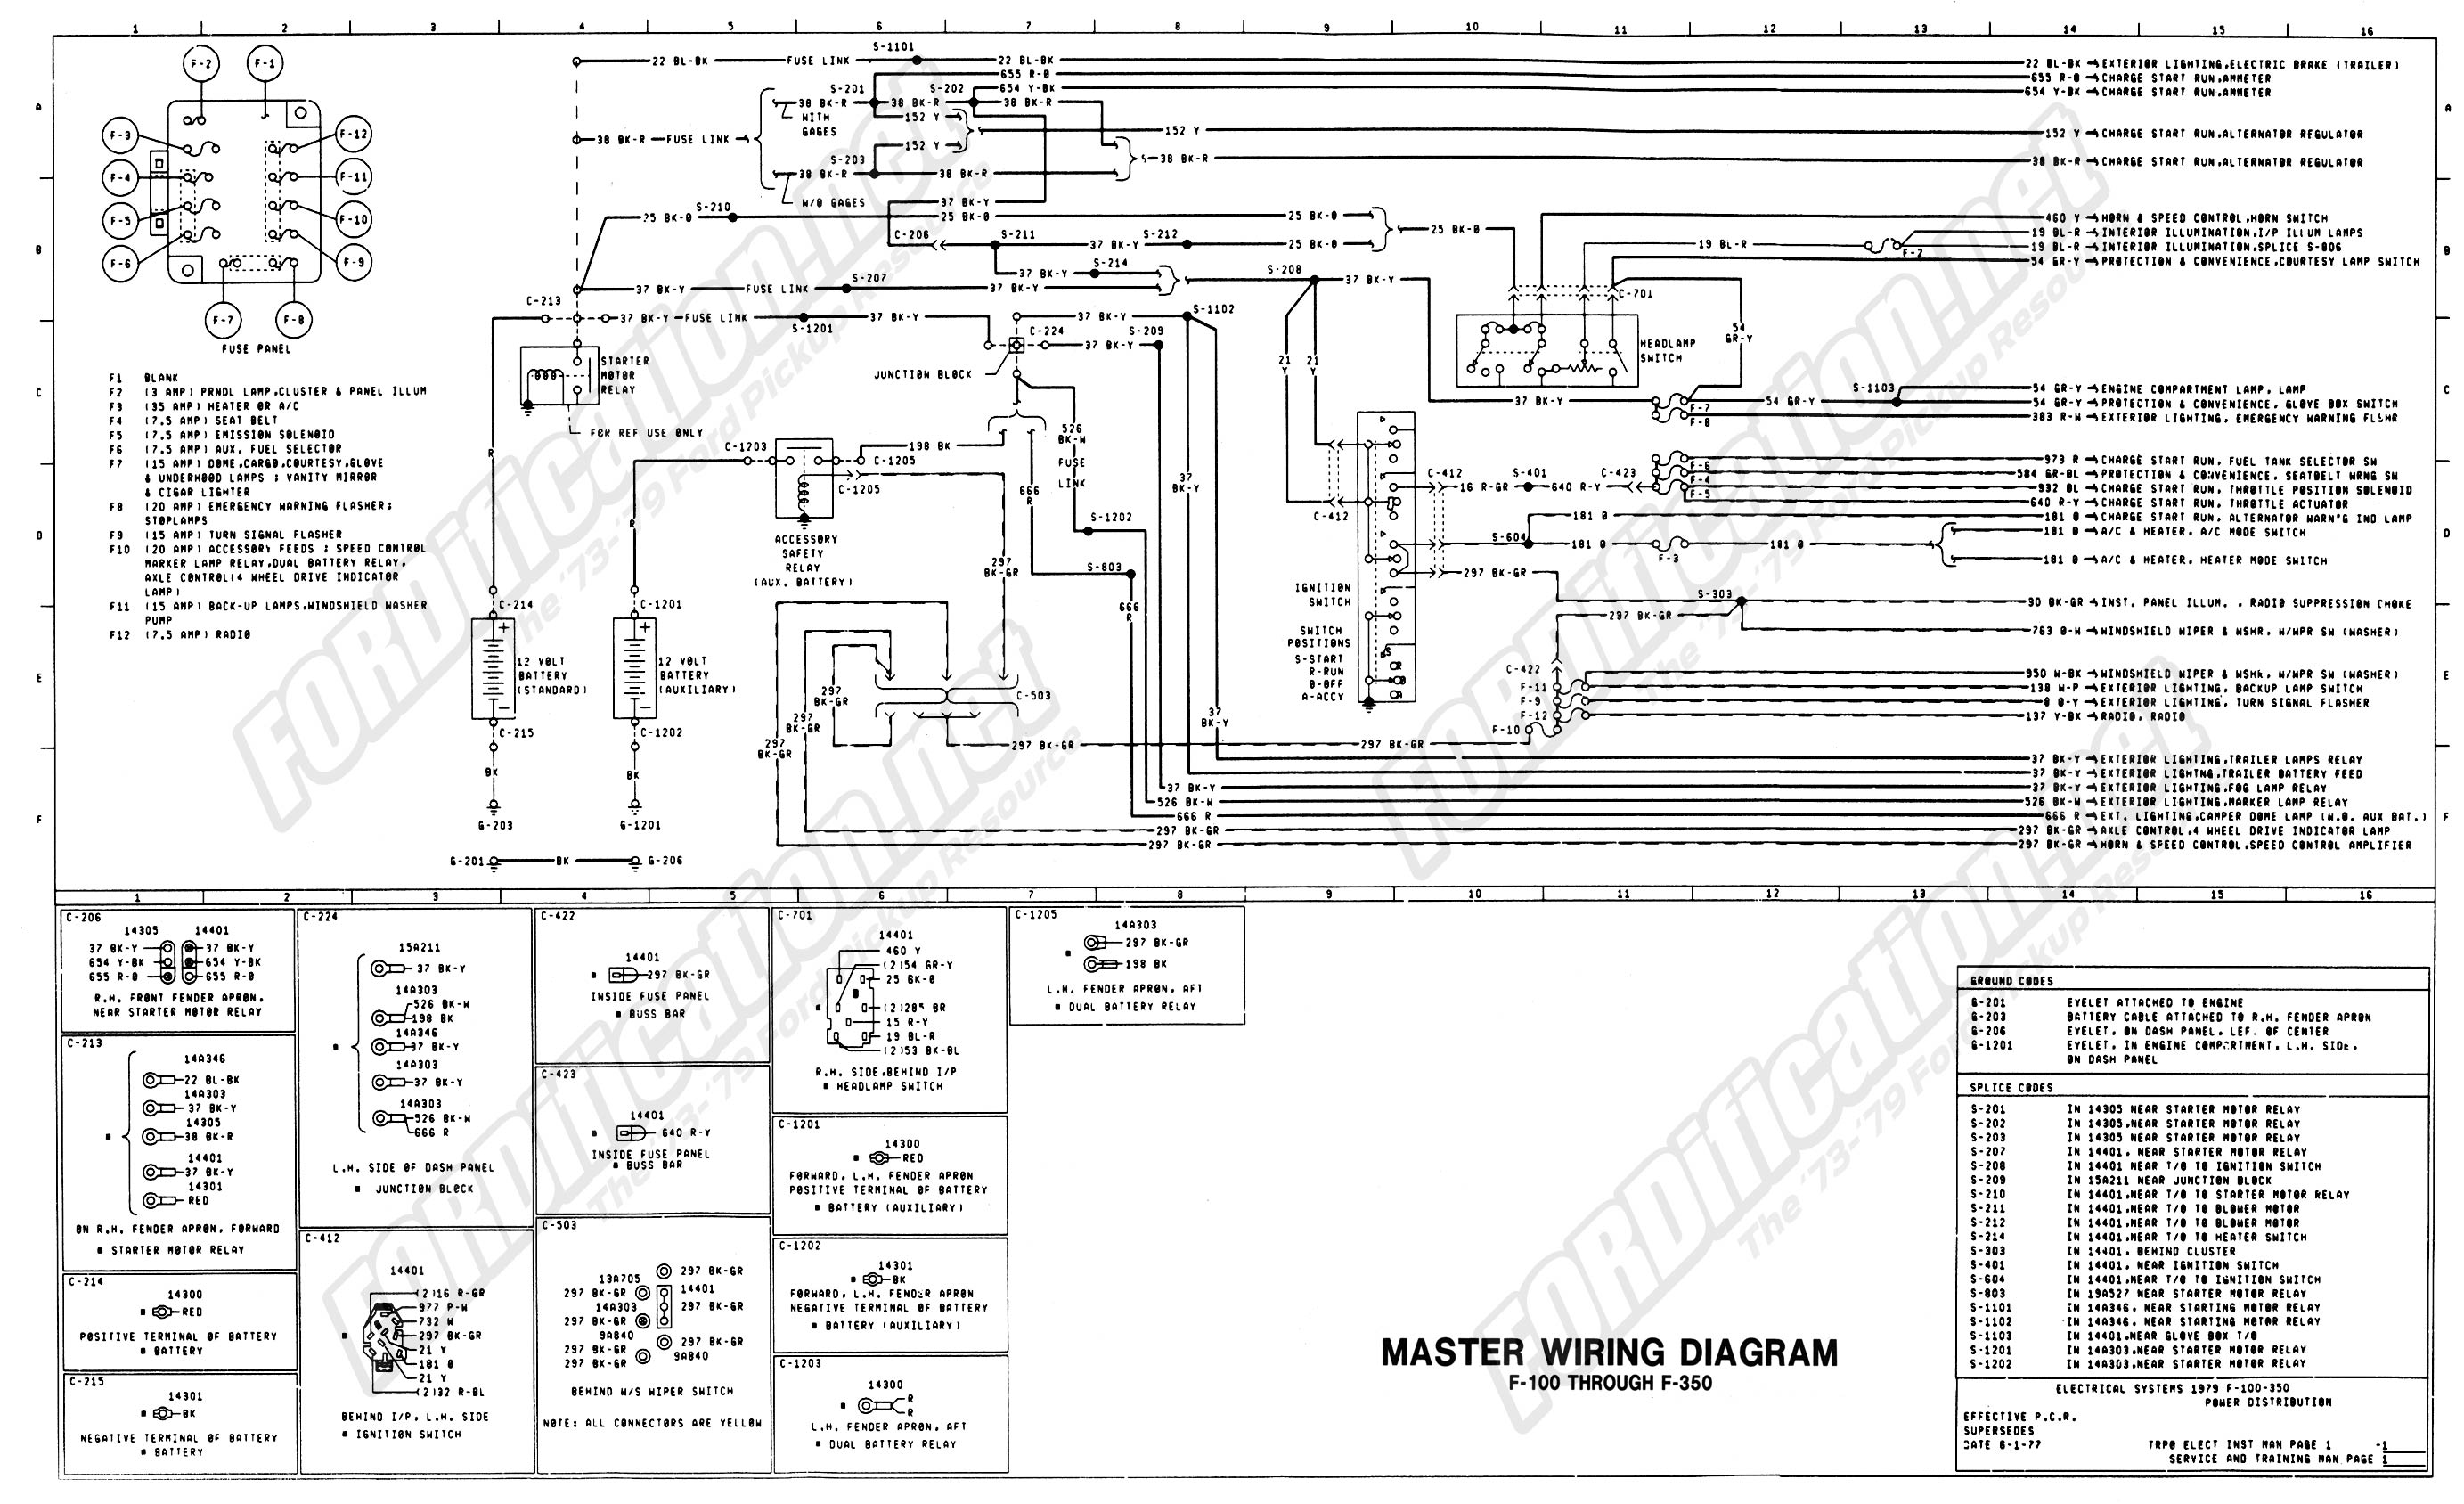 wiring_79master_1of9 1973 1979 ford truck wiring diagrams & schematics fordification net ford truck wiring diagrams free at webbmarketing.co